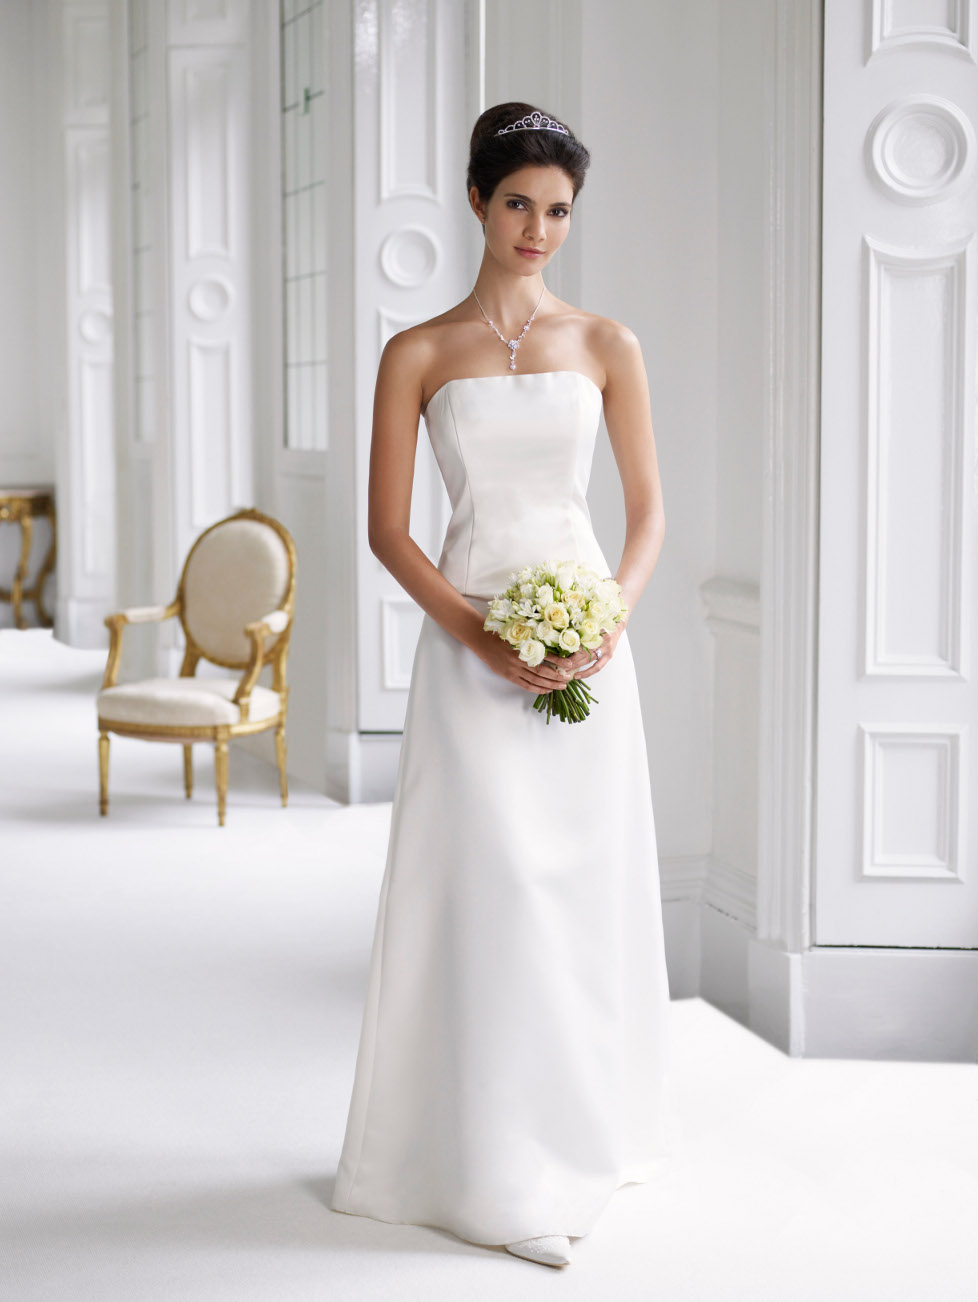 Wedding Dress Styles For Different Body Shapes 5